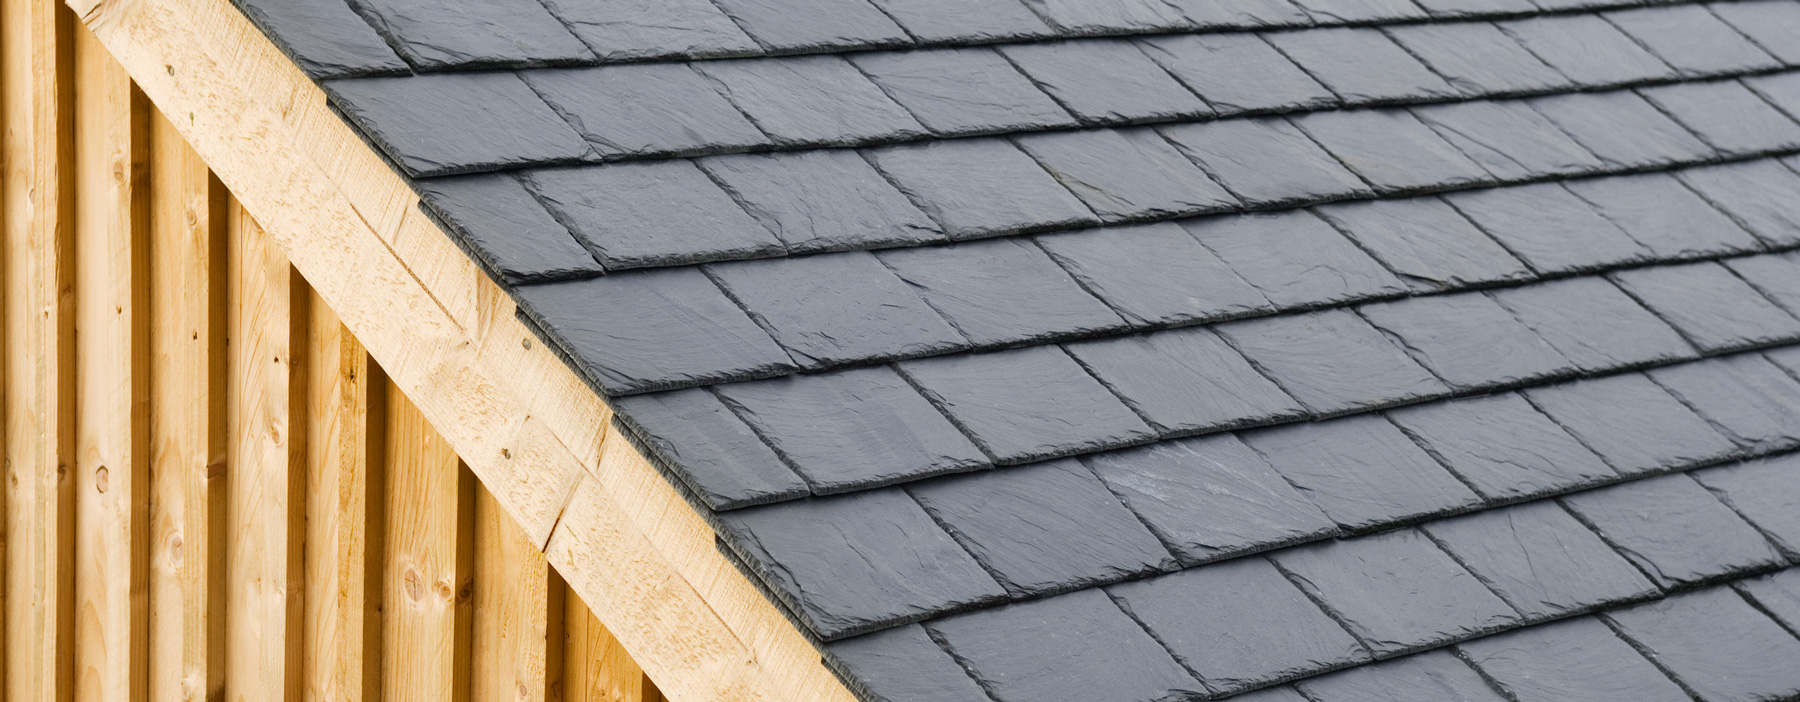 Slate roofing - Roof Worx